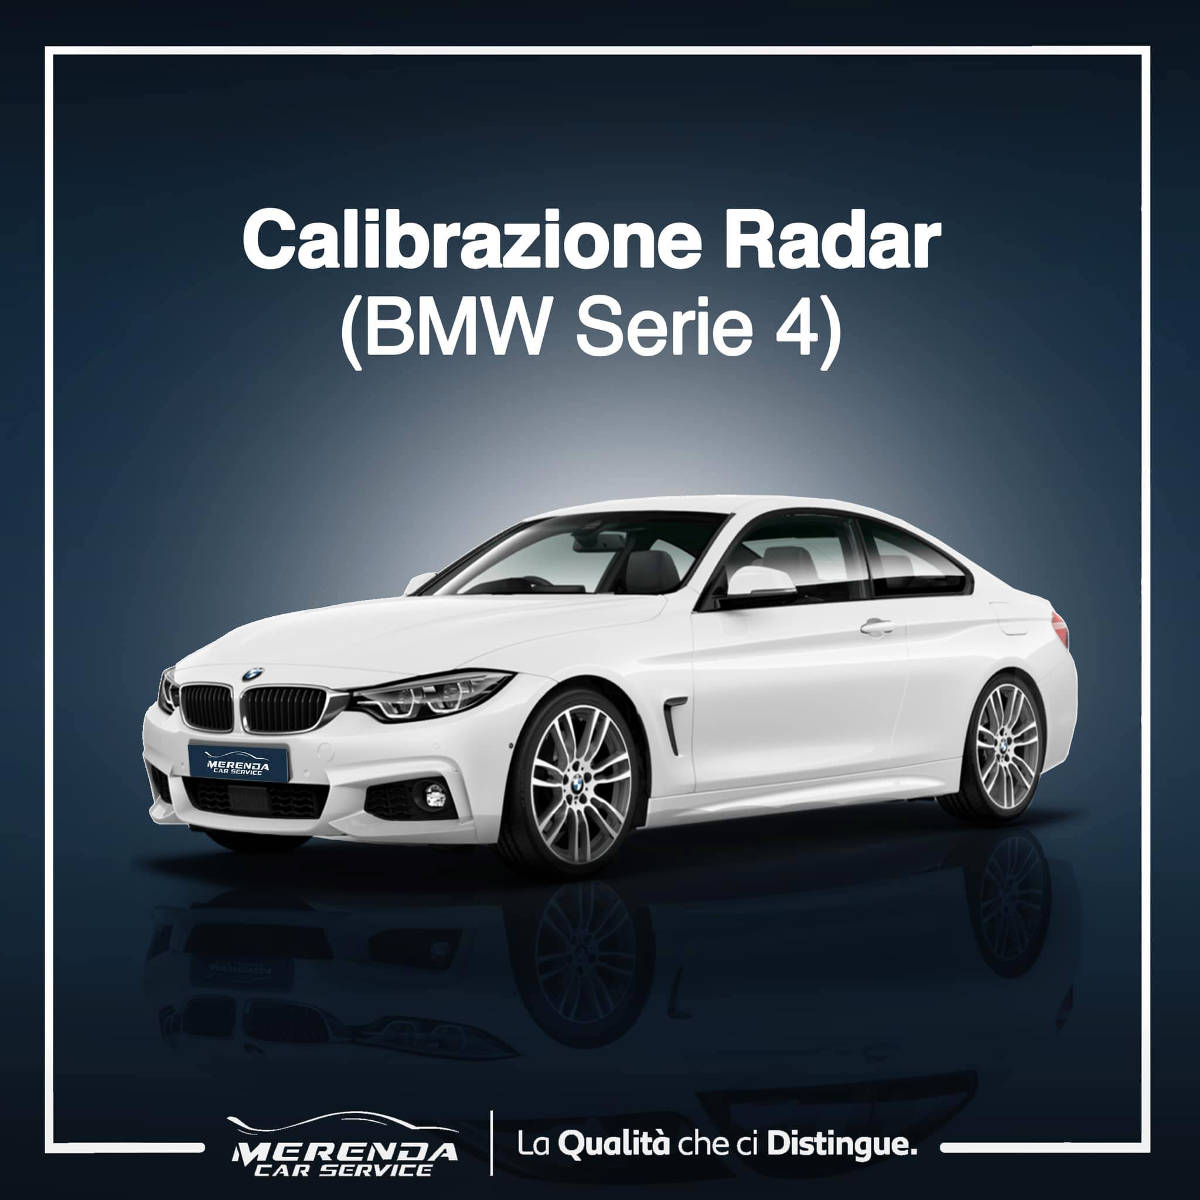 Calibrazione Radar BMW Serie 4